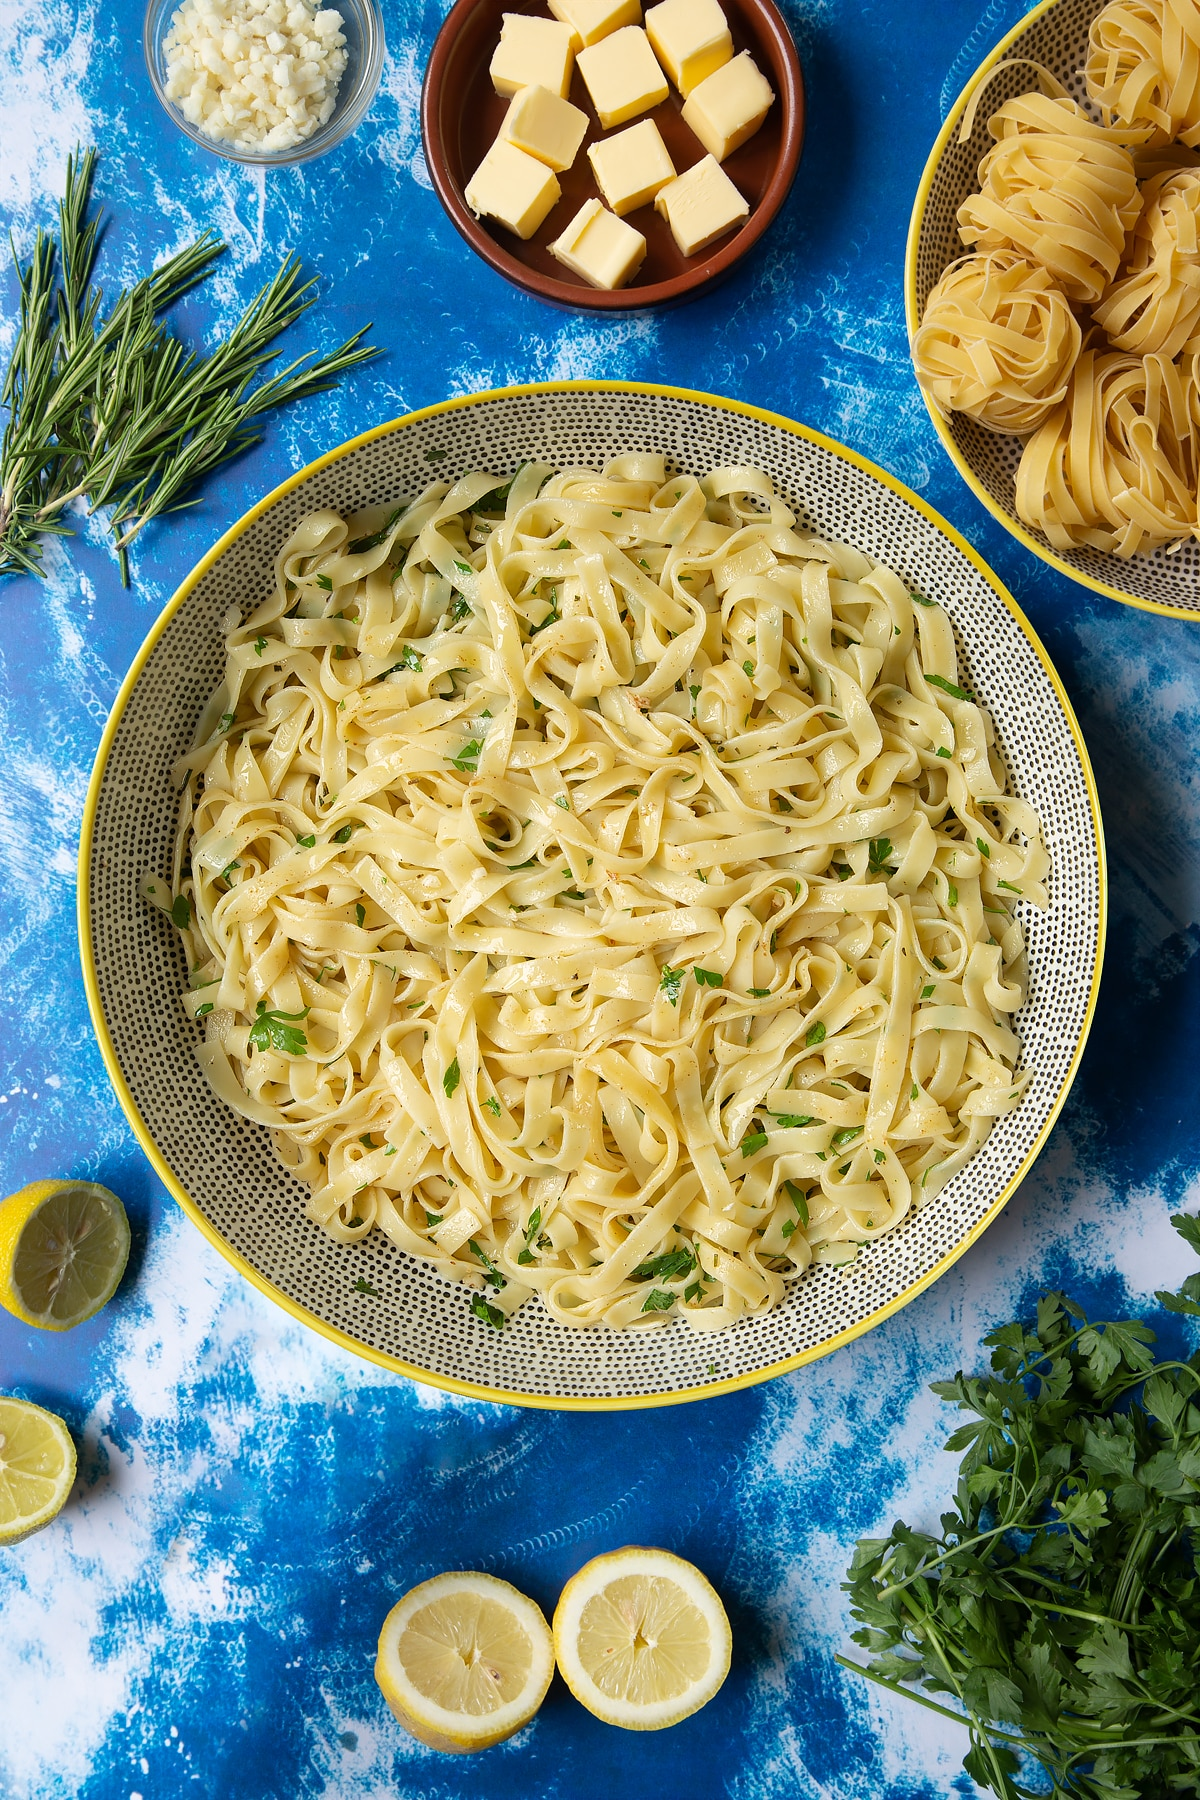 A large bowl with tagliatelle, rosemary and parsley. Ingredients to make Dutch Yellowtail tagliatelle surround the bowl.